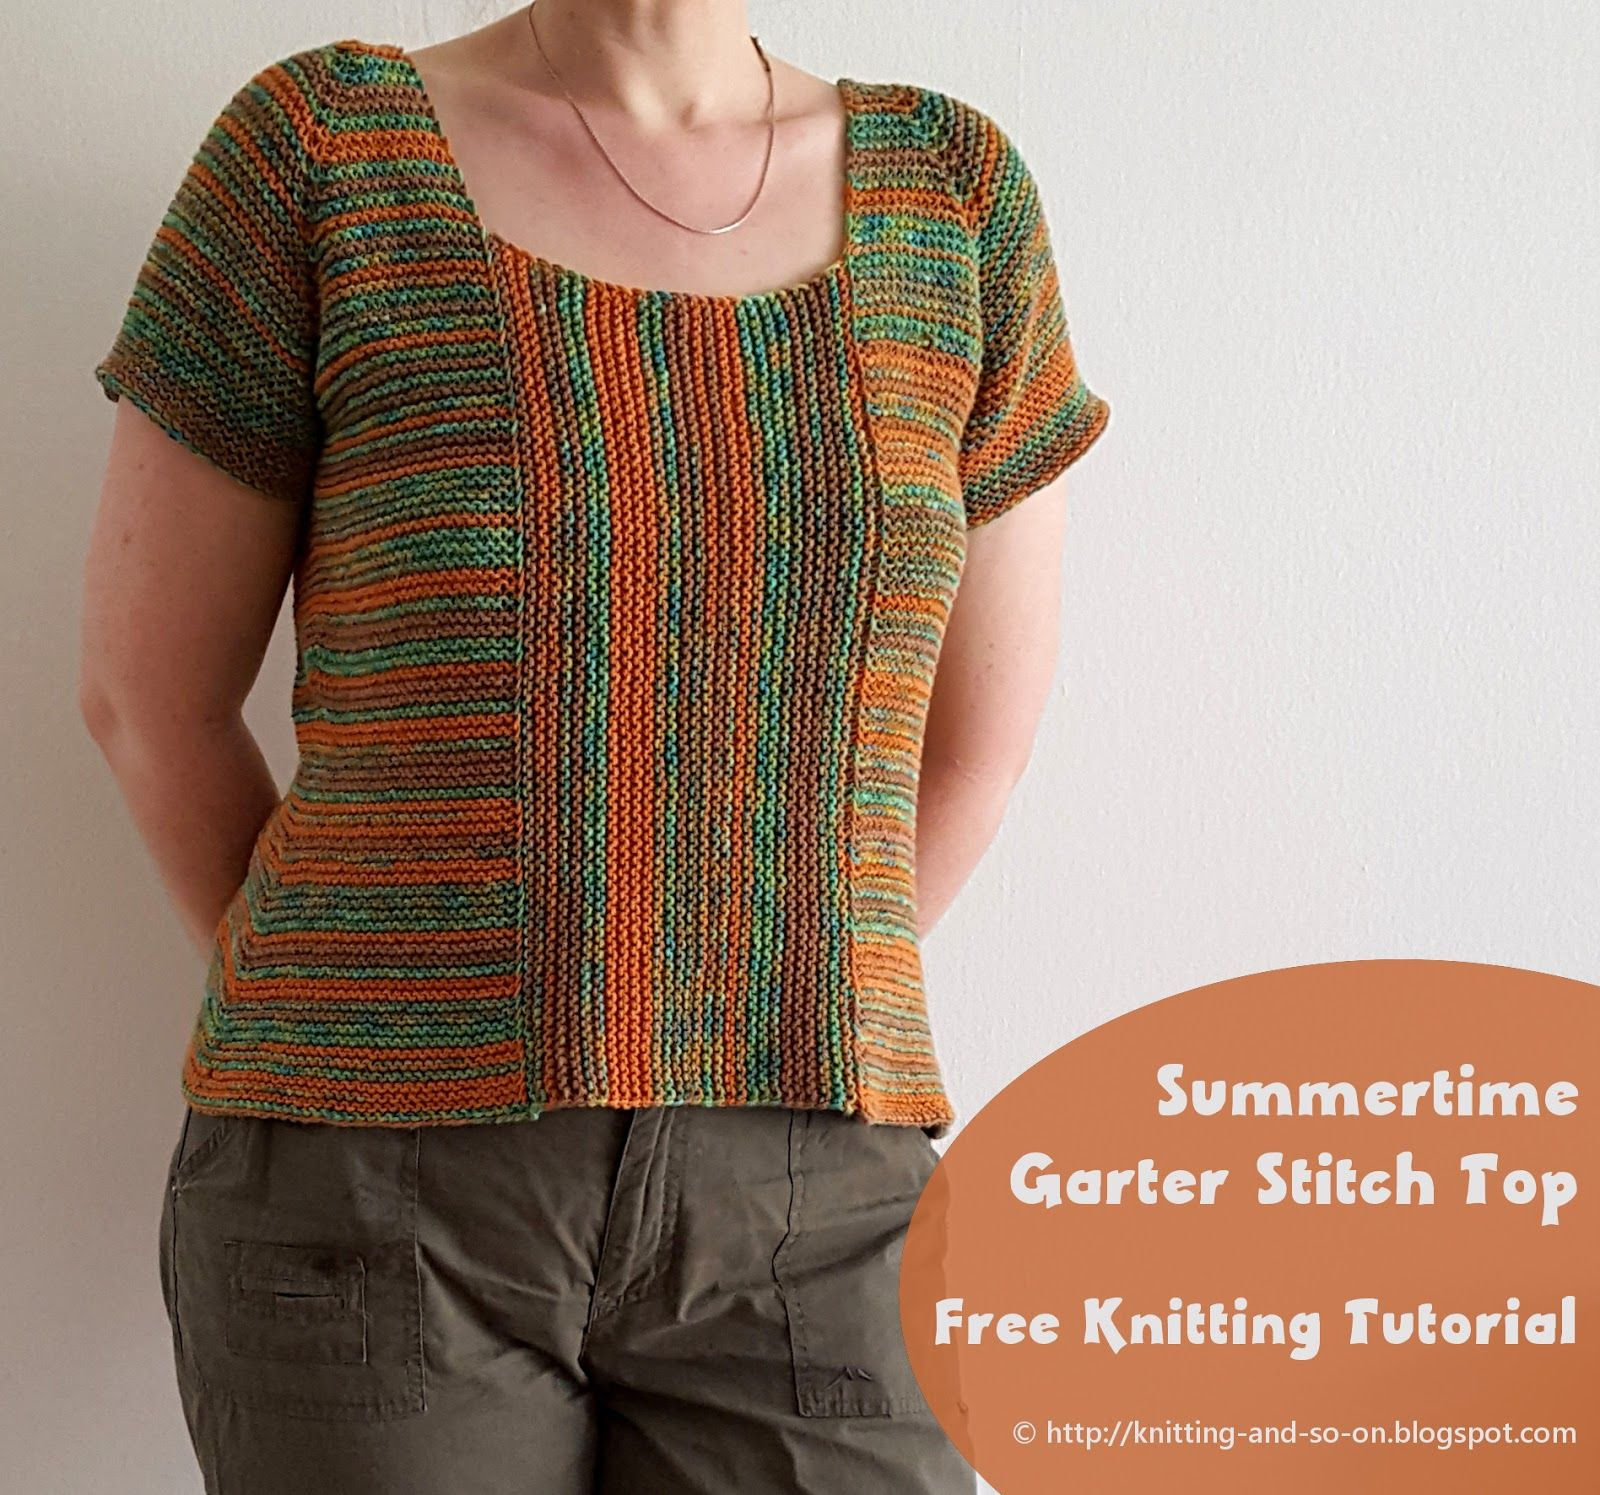 knitting tutorial, free knitting pattern, knit, free online knitting ...